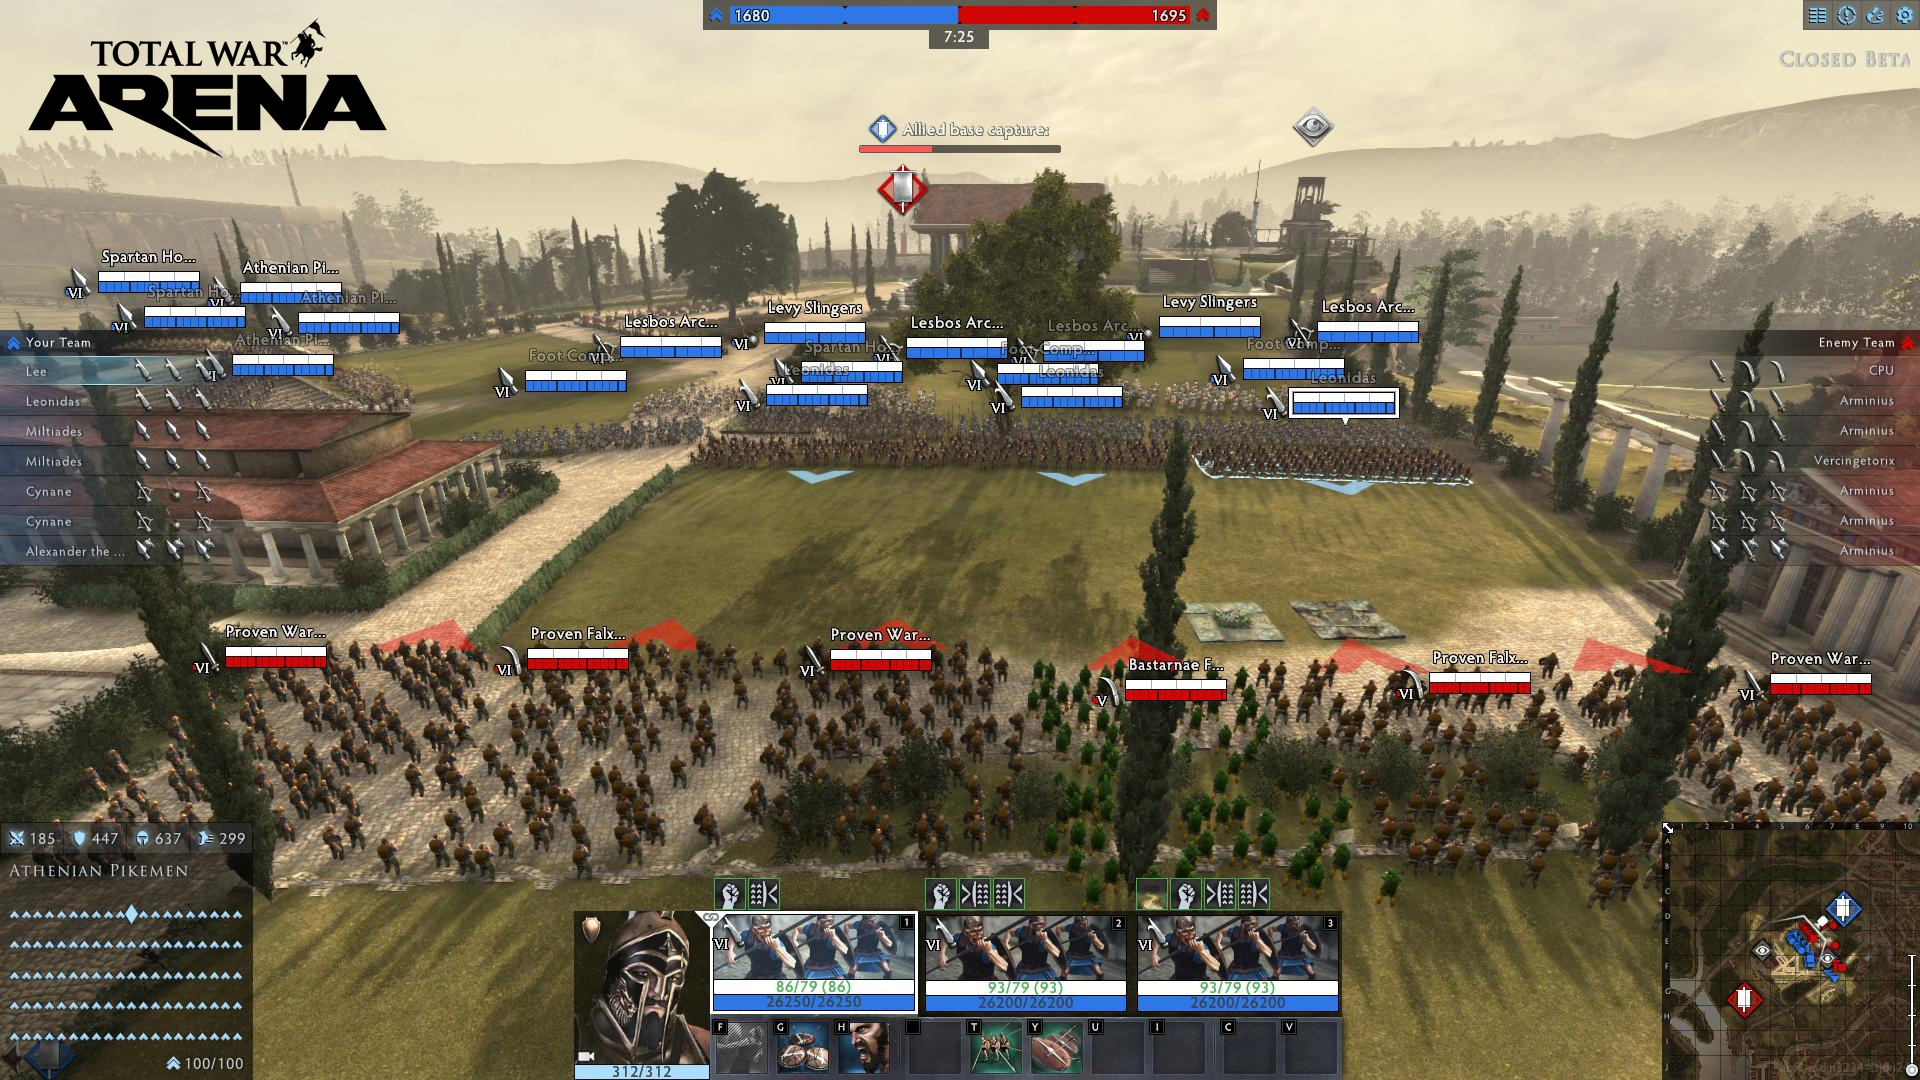 Total War Arena PAX Preview Battle Begins